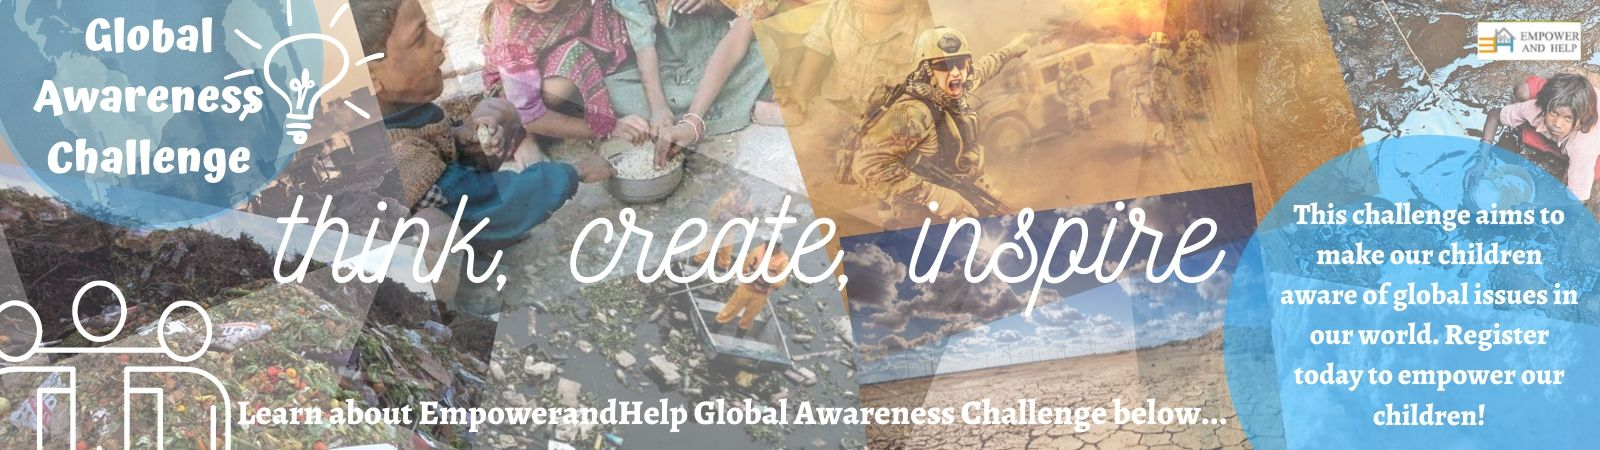 EmpowerAndHelp Global Awareness Challenge 2020